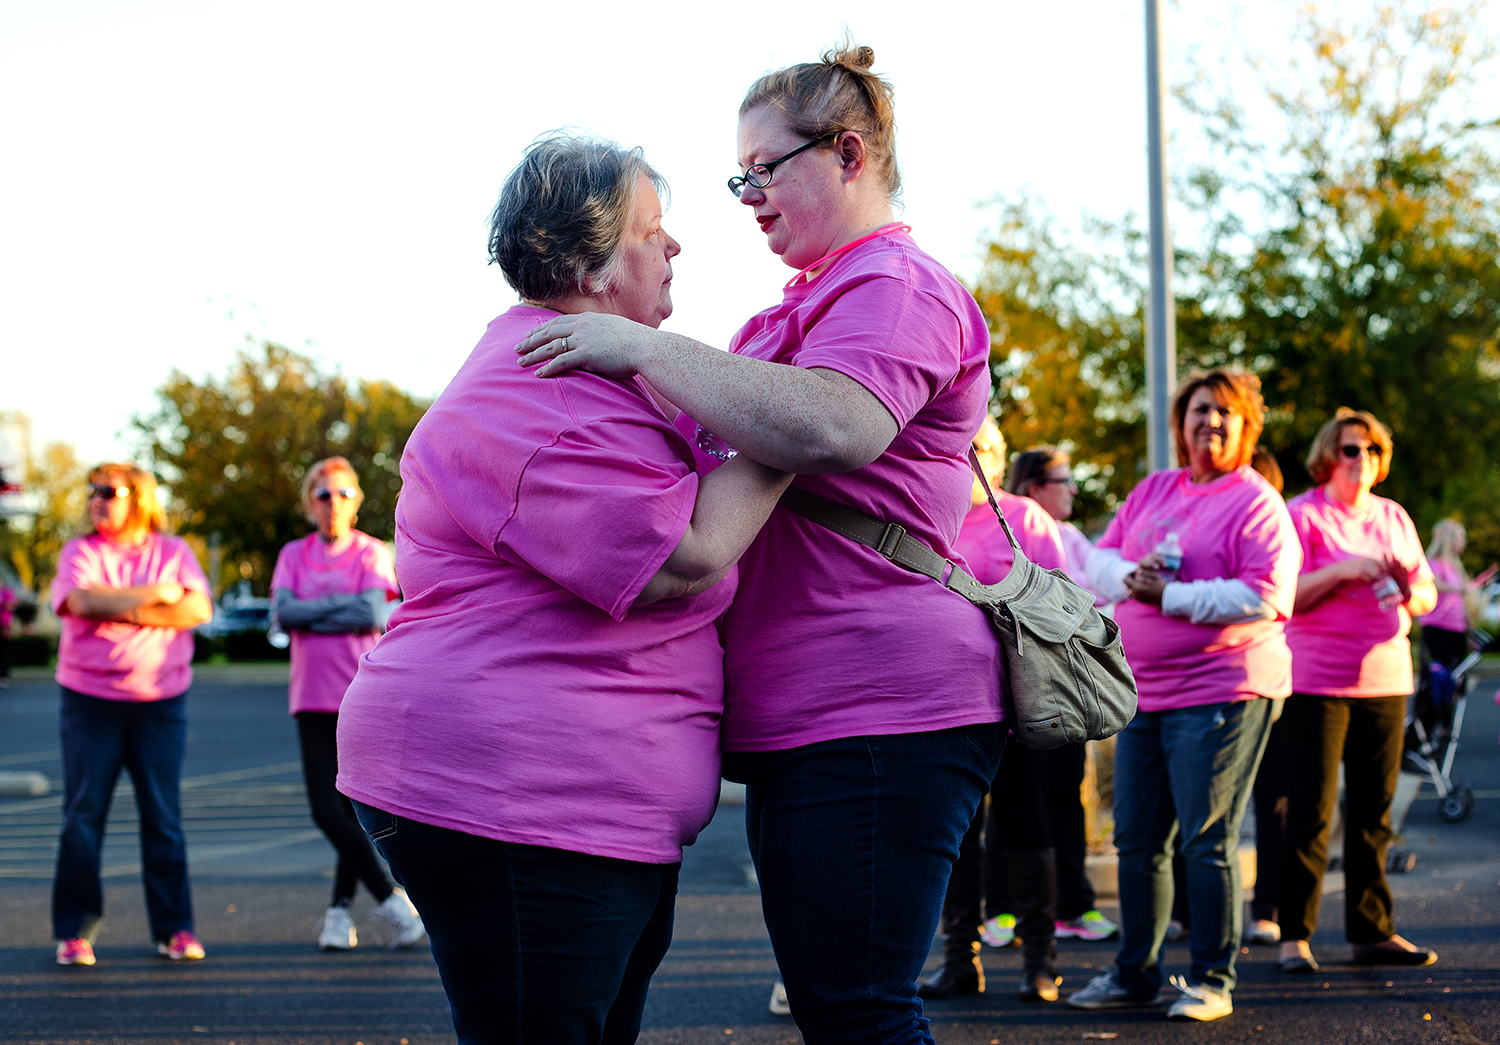 Ea Tucker and her daughter, Katie Schuh, console each other during the Light the Night Pink event at the Simmons Cancer Institute Oct. 18. Tucker said she got emotional remembering her friend, Lucy Kruger, who died after battling breast cancer. Ted Schurter/The State Journal-Register